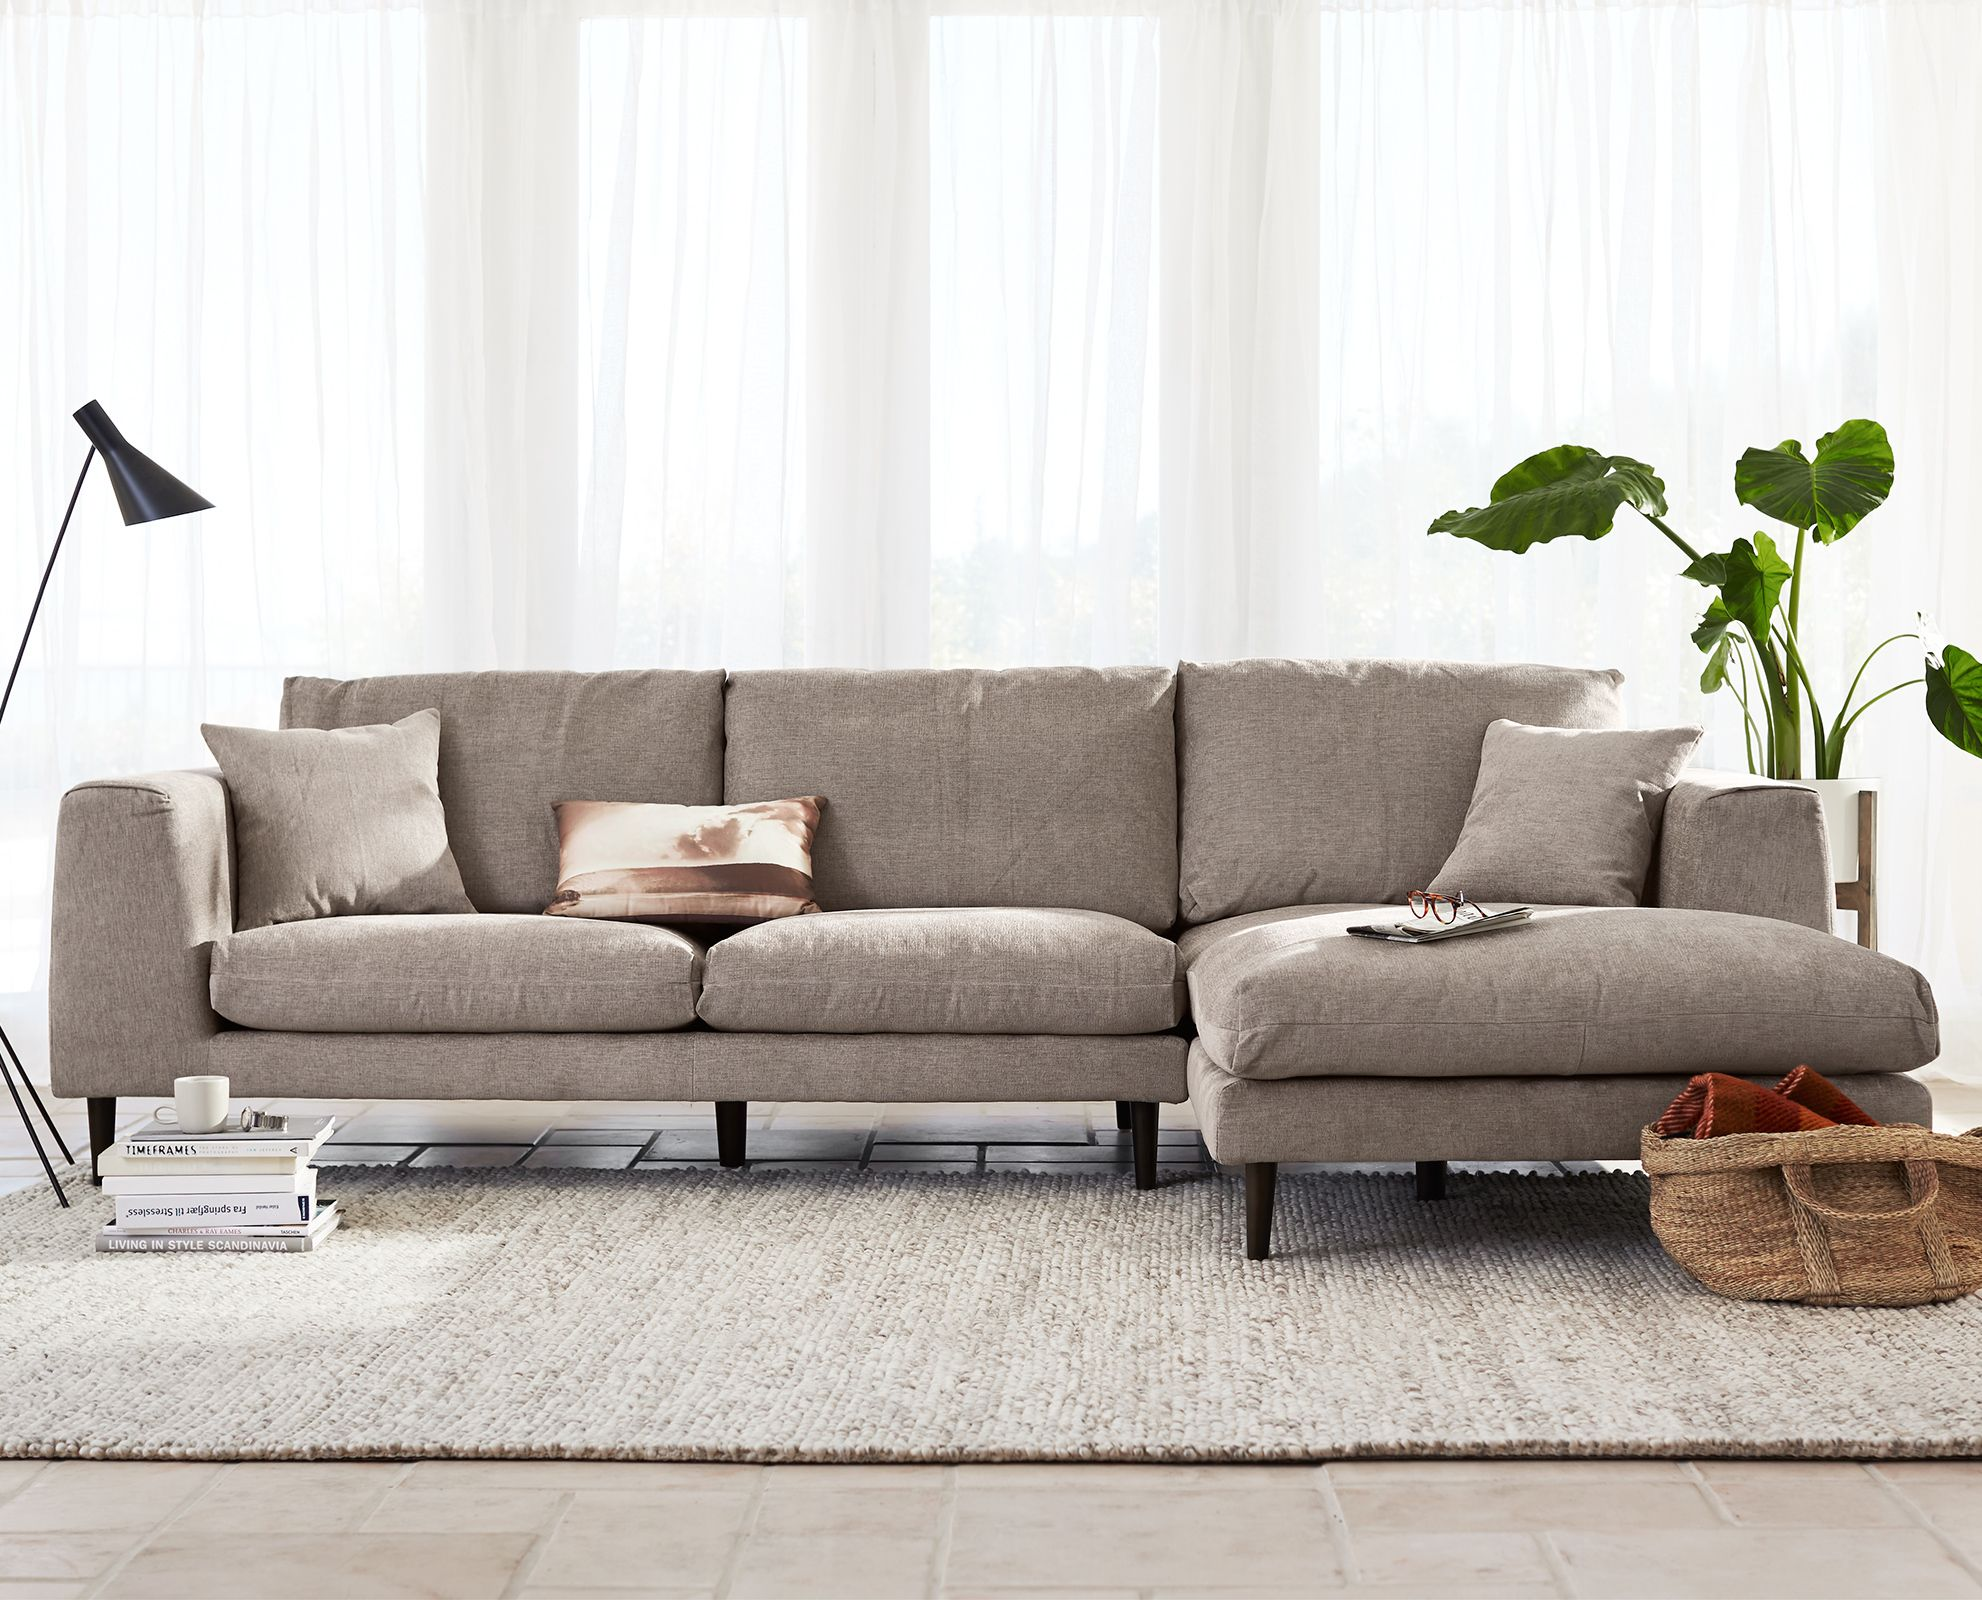 Jorgen Chaise Sectional From Dania Furniture Co. #sectional #sofa #chaise  #scandinavian #modern #scandistyle #inspiration #dania